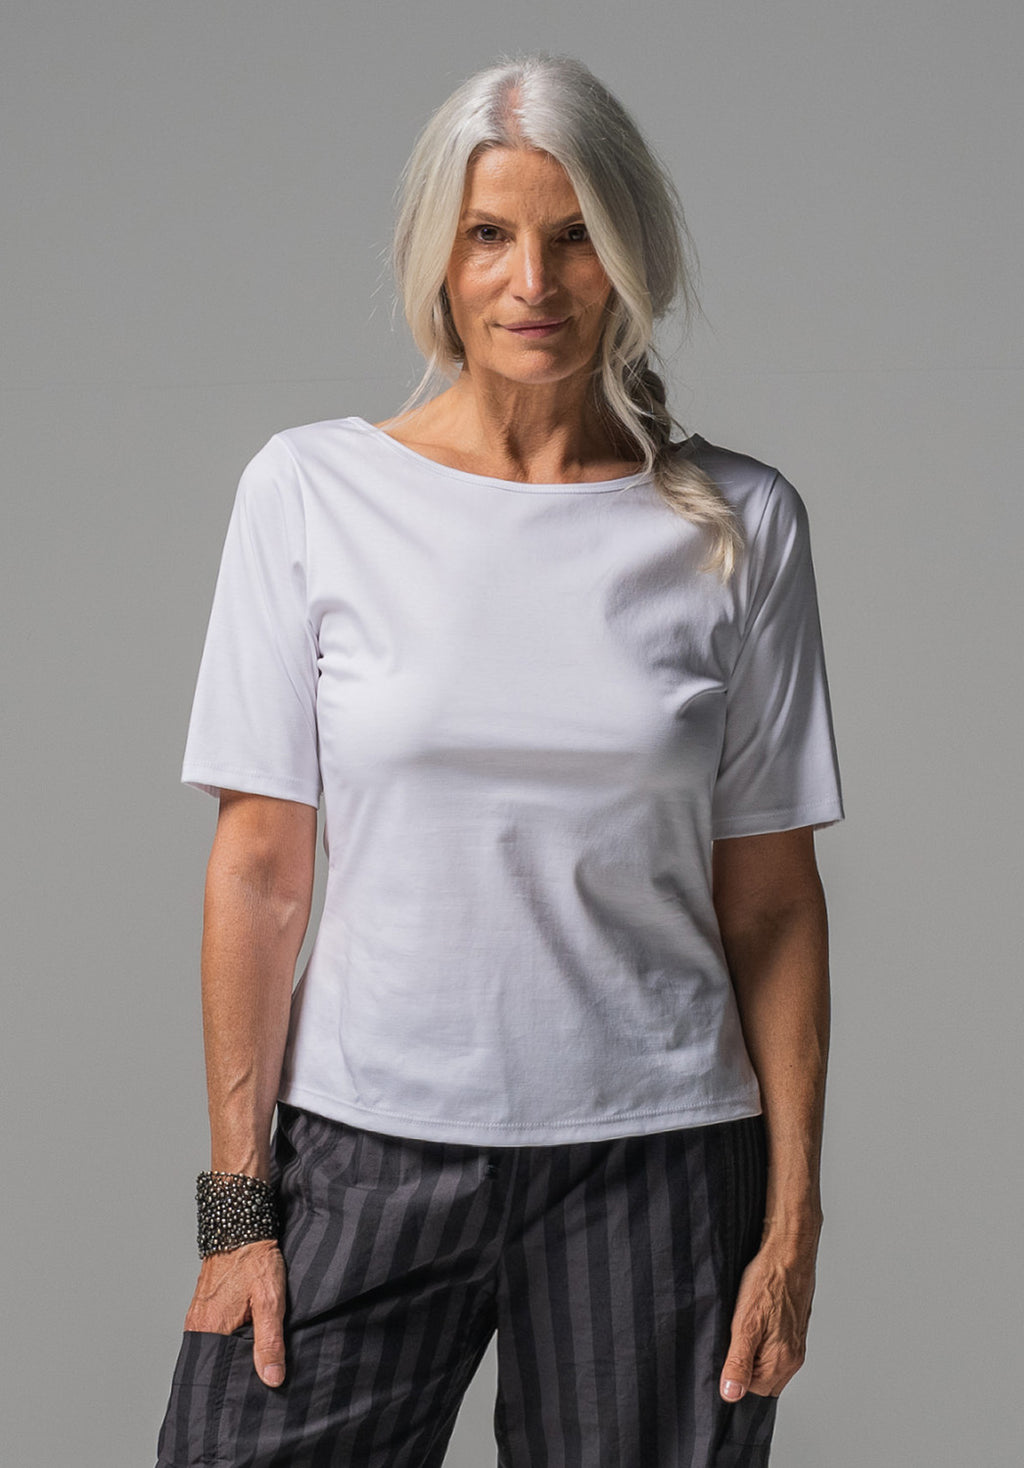 mercerized cotton top, ethical fashion australia, sustainable fashion, australian sustainable fashion, ethical fashion au,